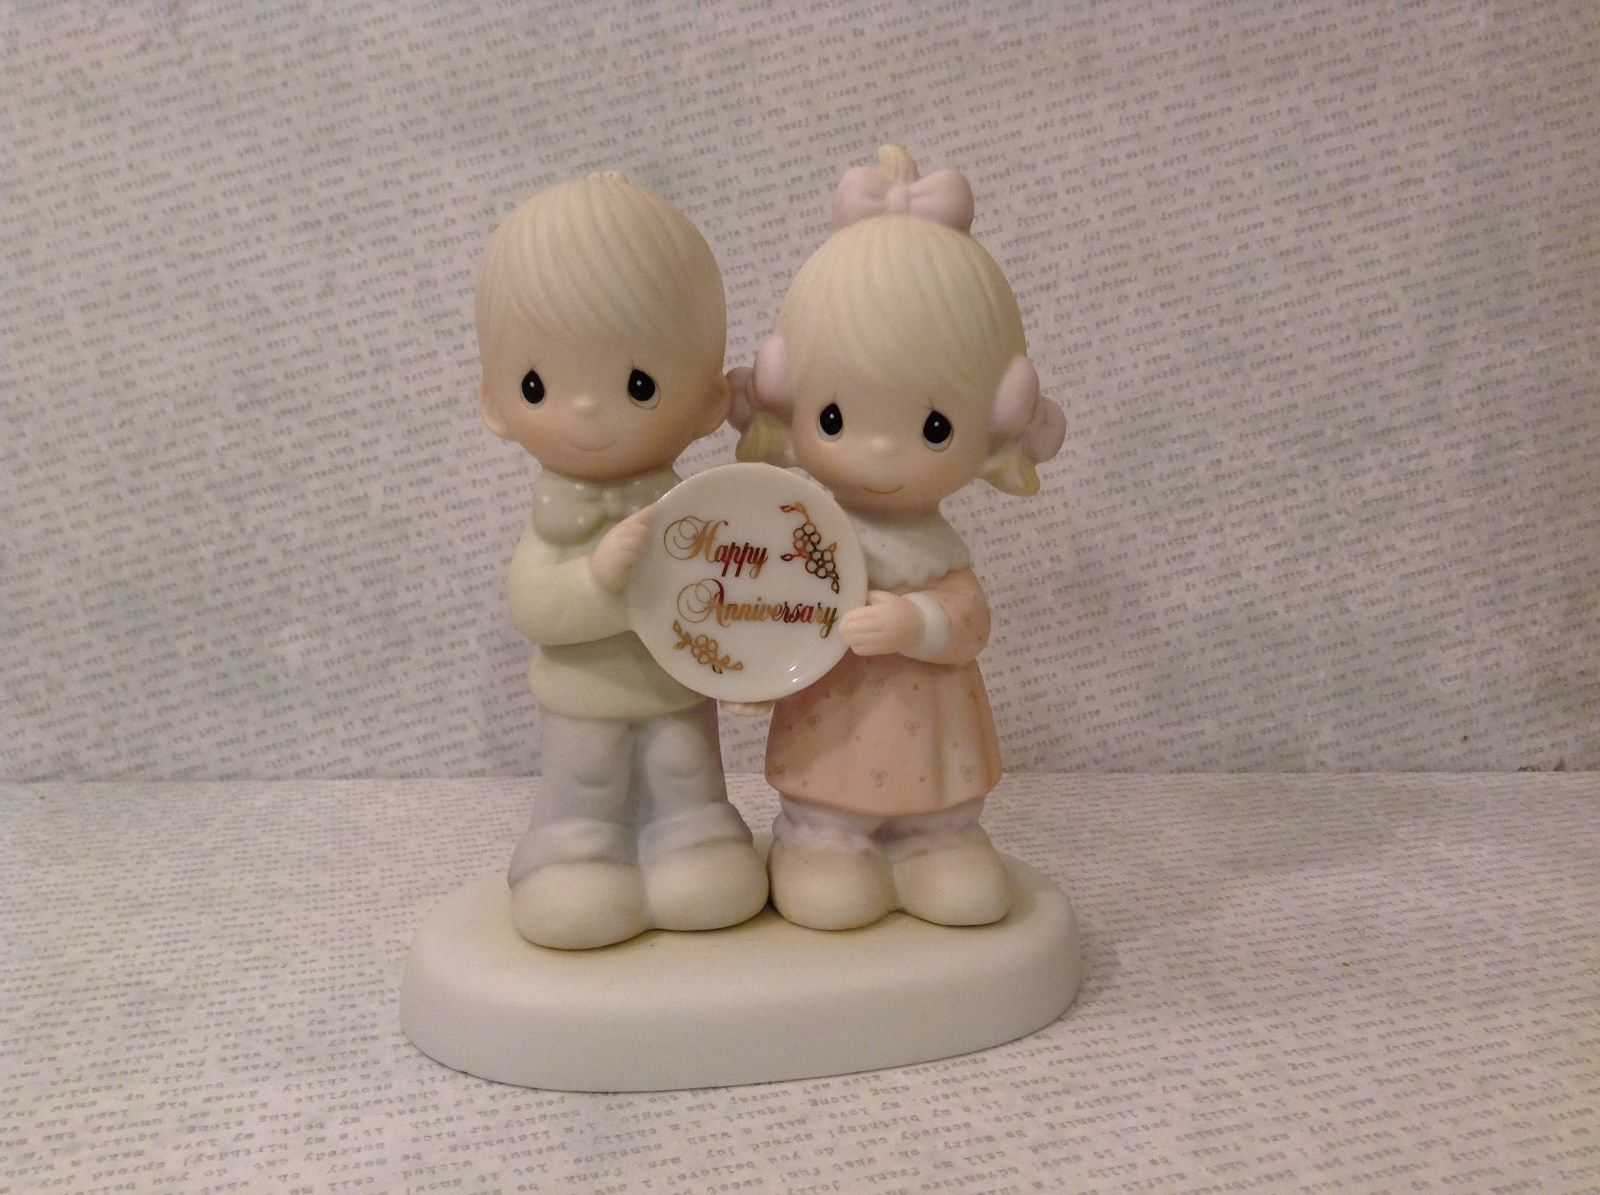 God Blessed Our Years Together Happy Anniversary Enesco Figurine 1983 Vintage